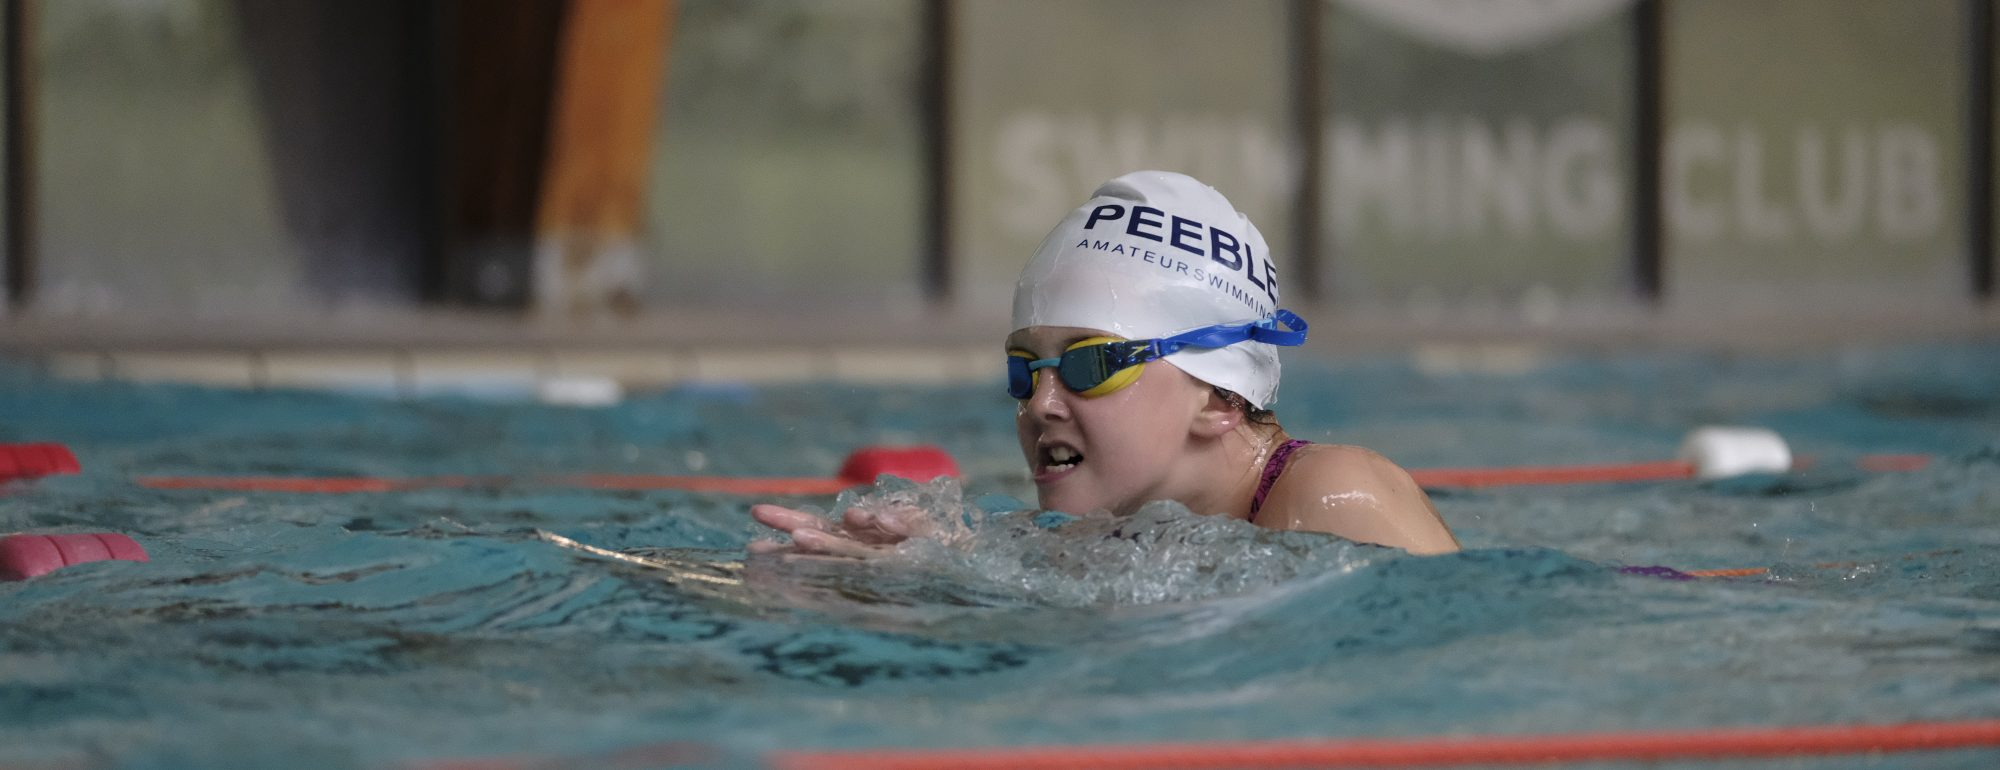 Swimming GALASHIELS, SCOTLAND - August 07: (Photo by Rob Gray / Freelance)